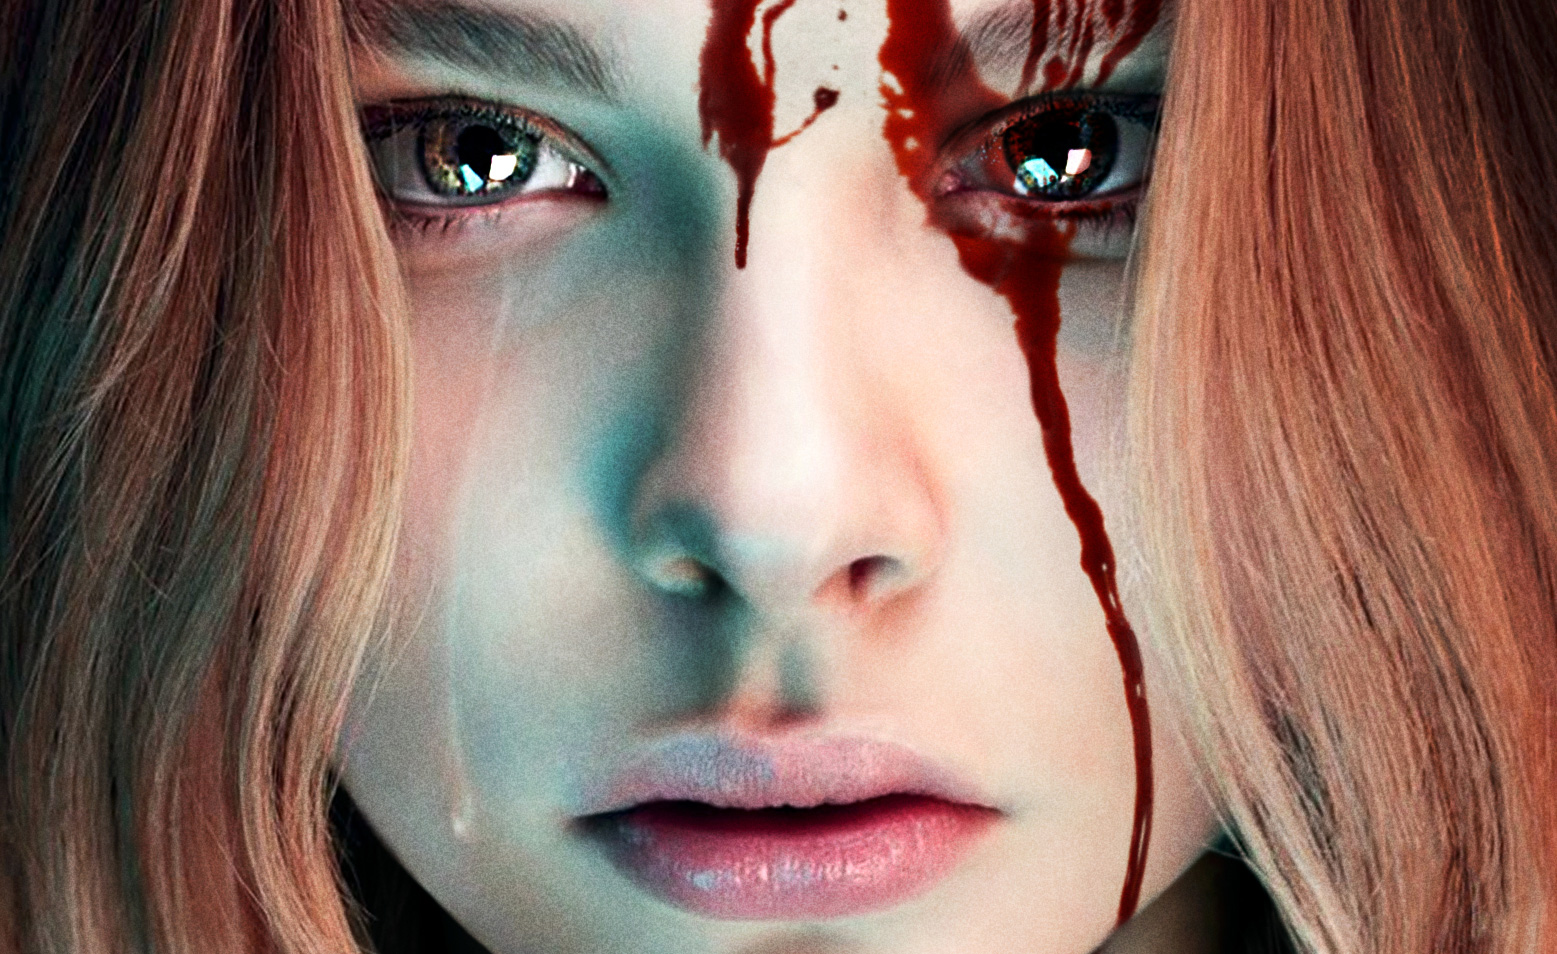 first-look-at-the-carrie-remake-movie-trailer-feat